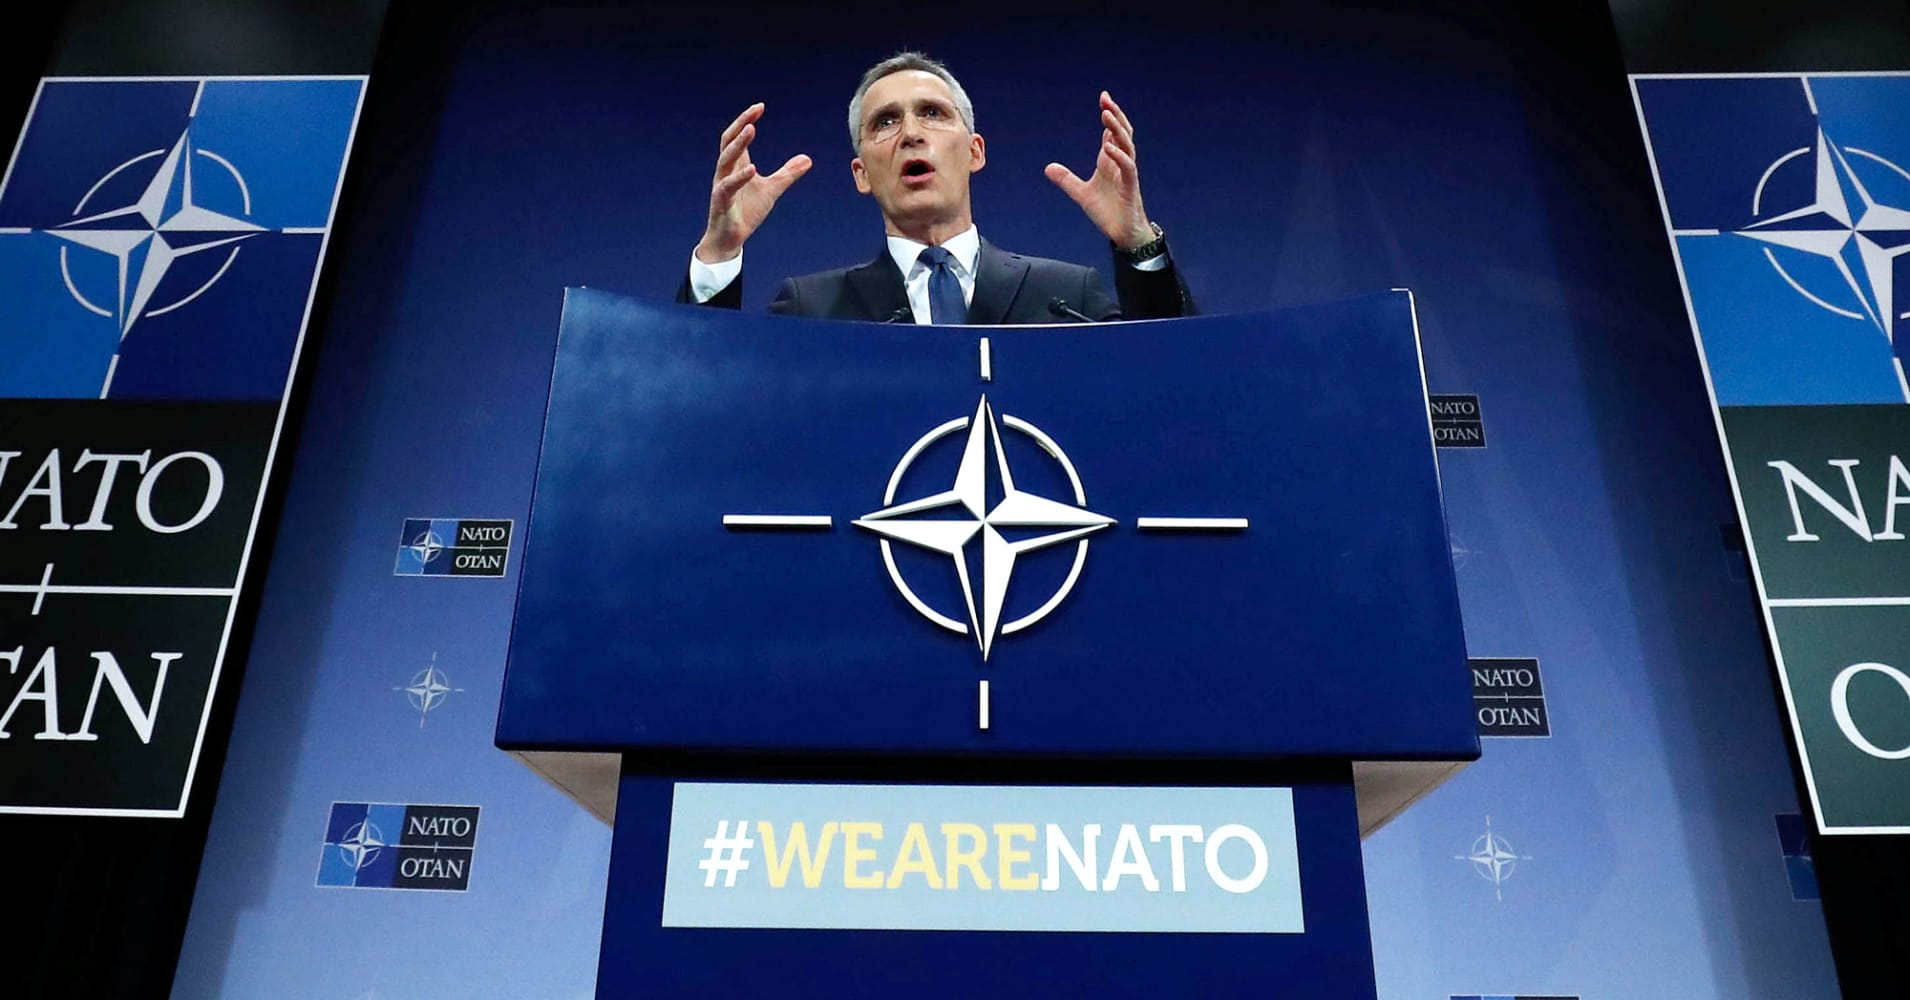 Russian sanctions are helping to prevent another Crimea, NATO's Stoltenberg says